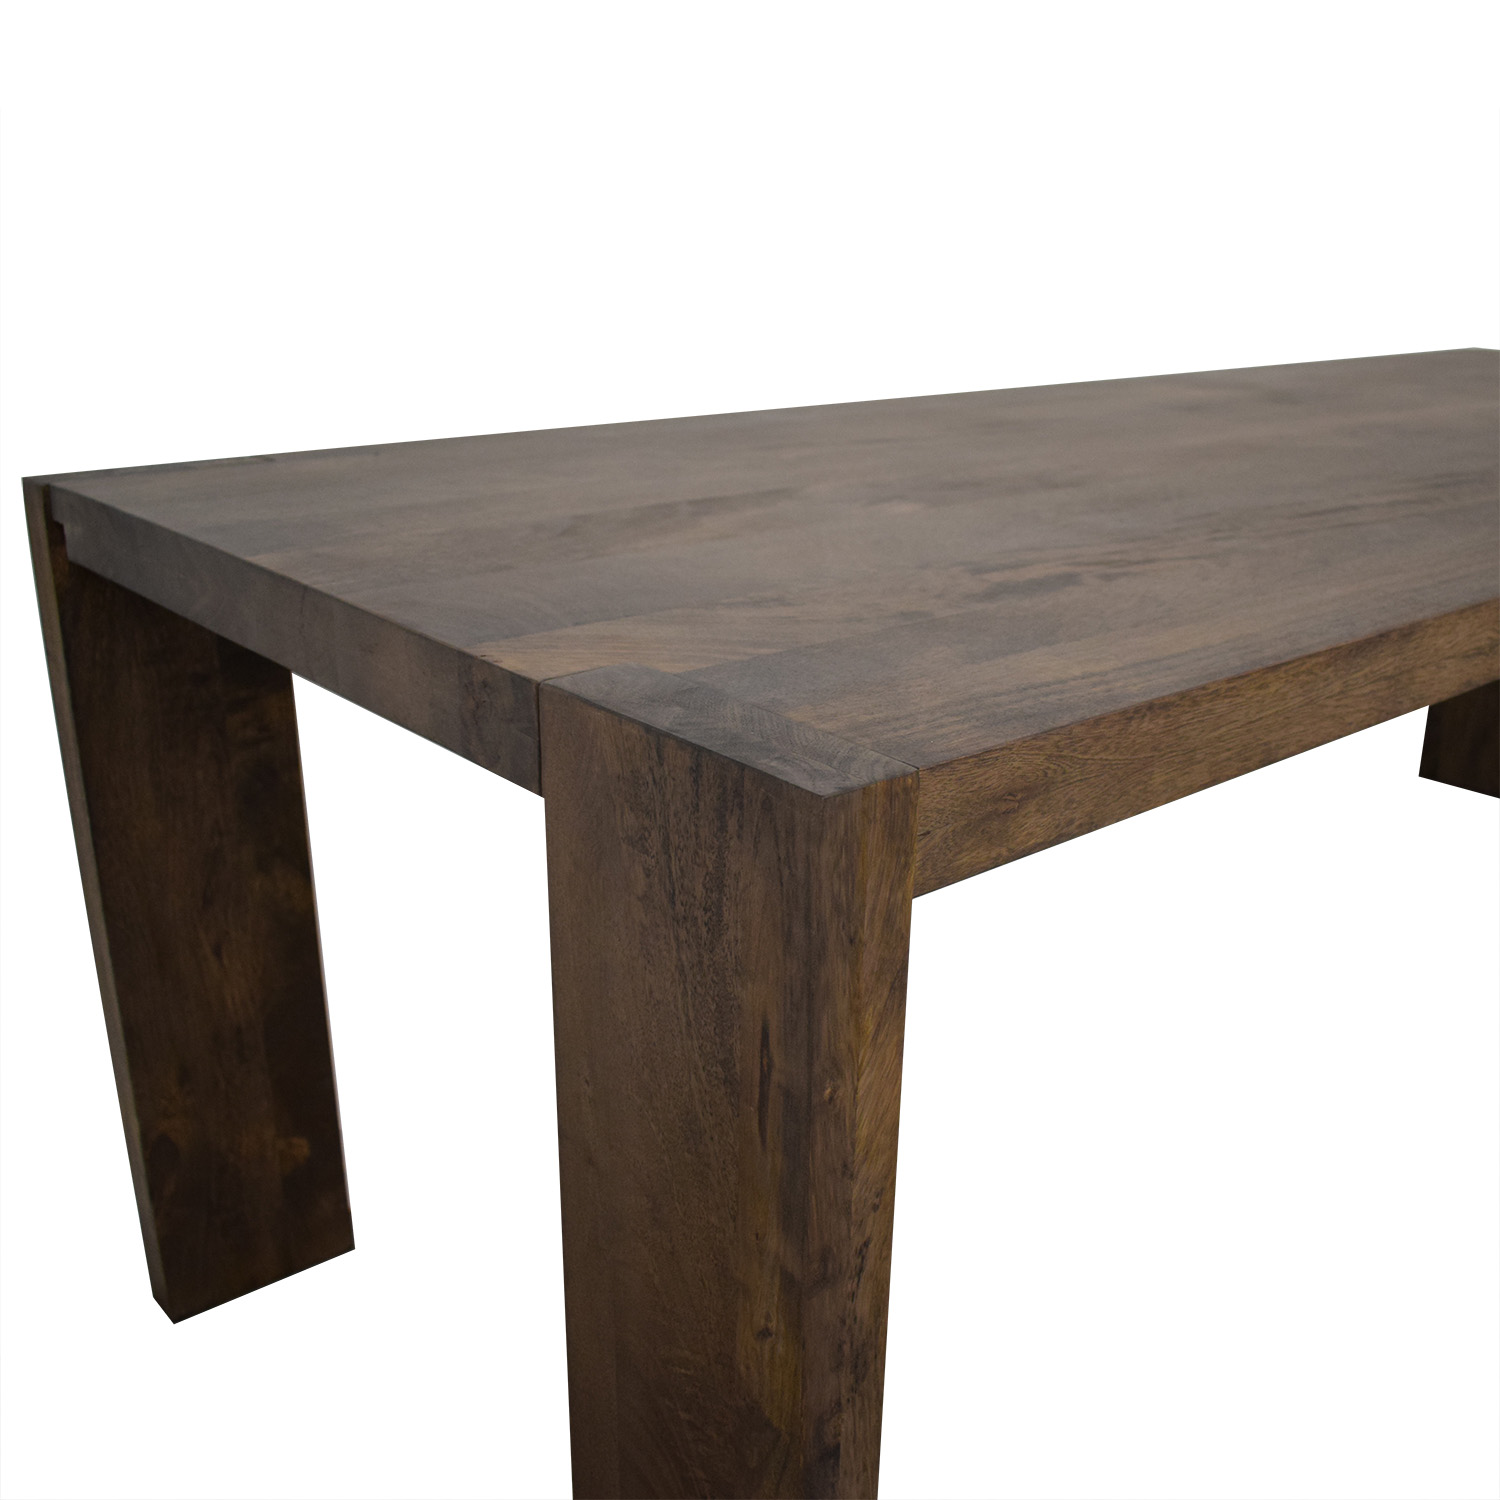 CB2 CB2 Blox Dining Table coupon